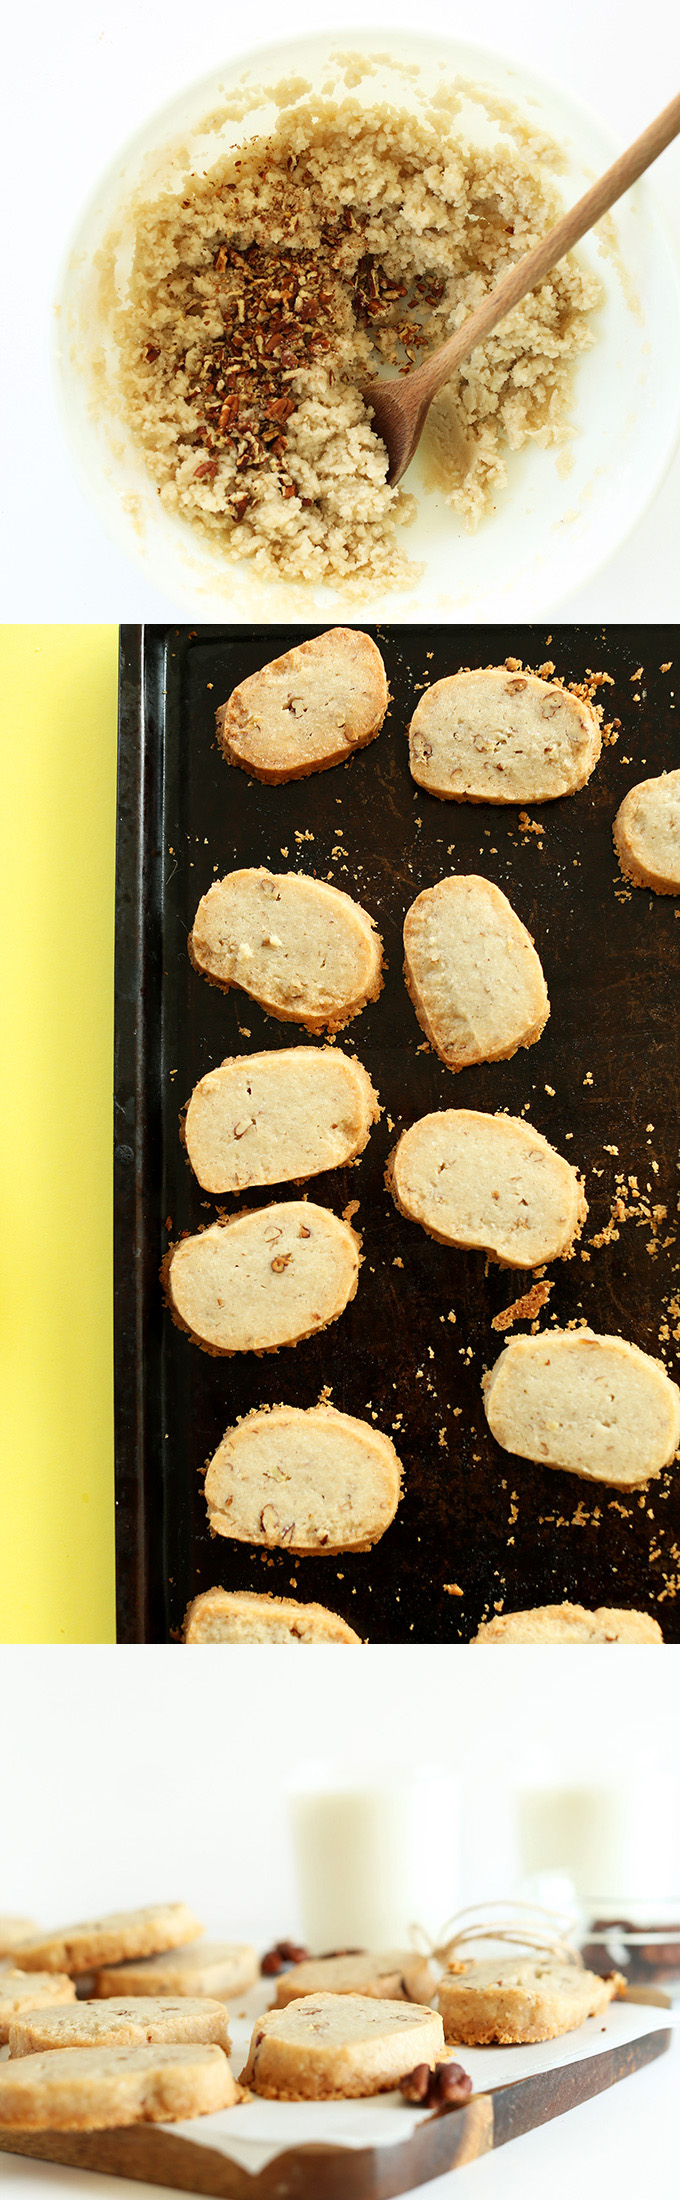 Mixing bowl of shortbread ingredients and baking sheet and cutting board of freshly baked shortbread cookies